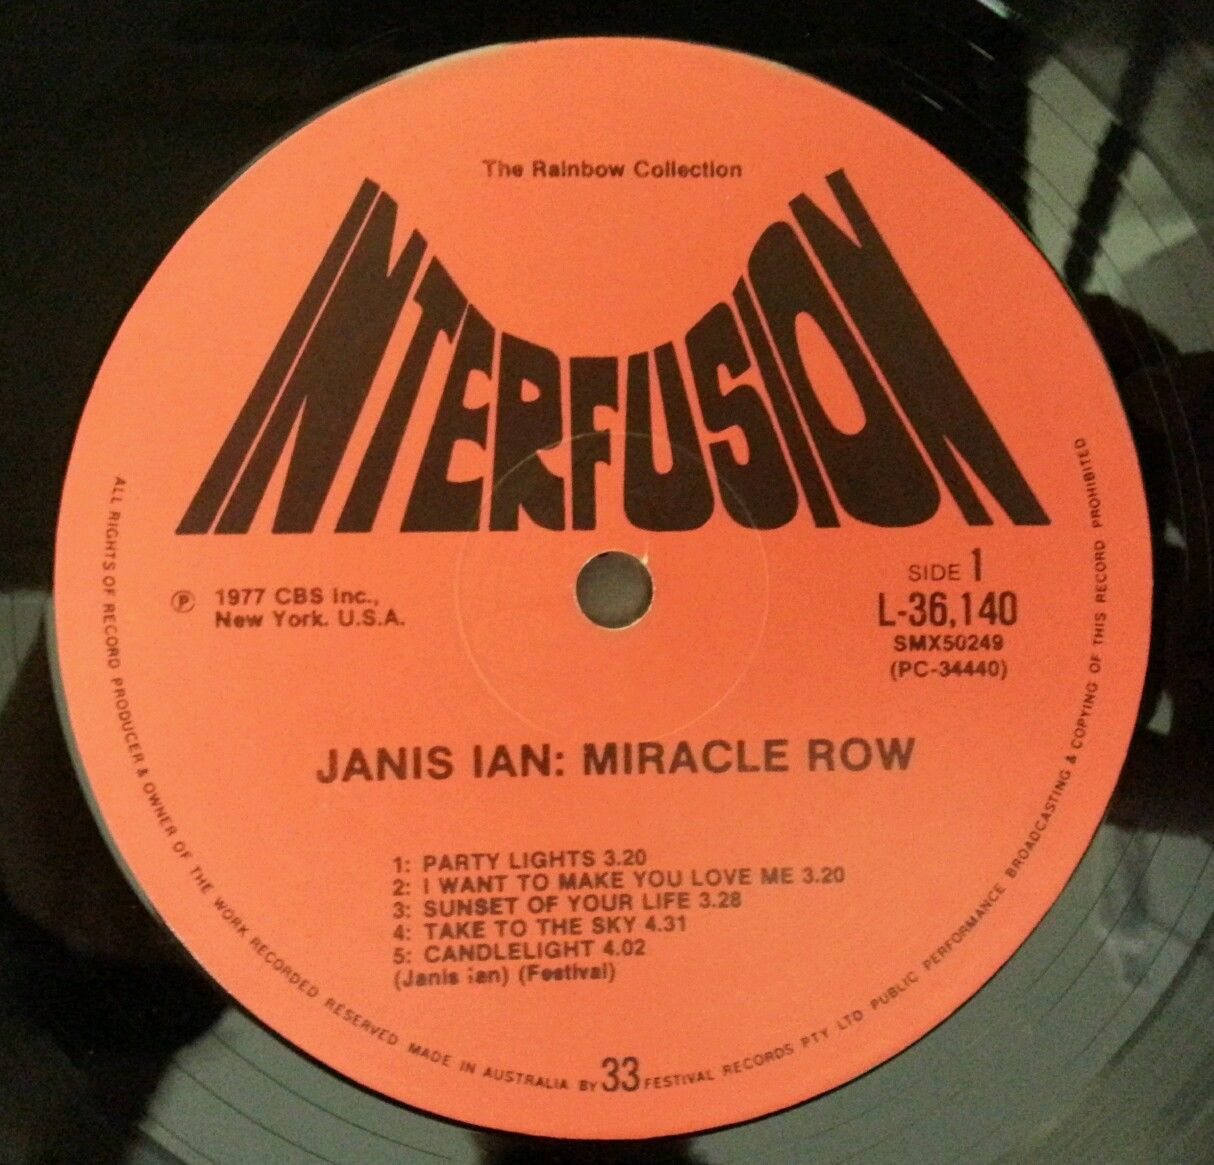 JANIS-IAN-Miracle-Row-Vinyl-LP-Record-USA-Press-GFold-WInner-PC-34440-271898567917-3